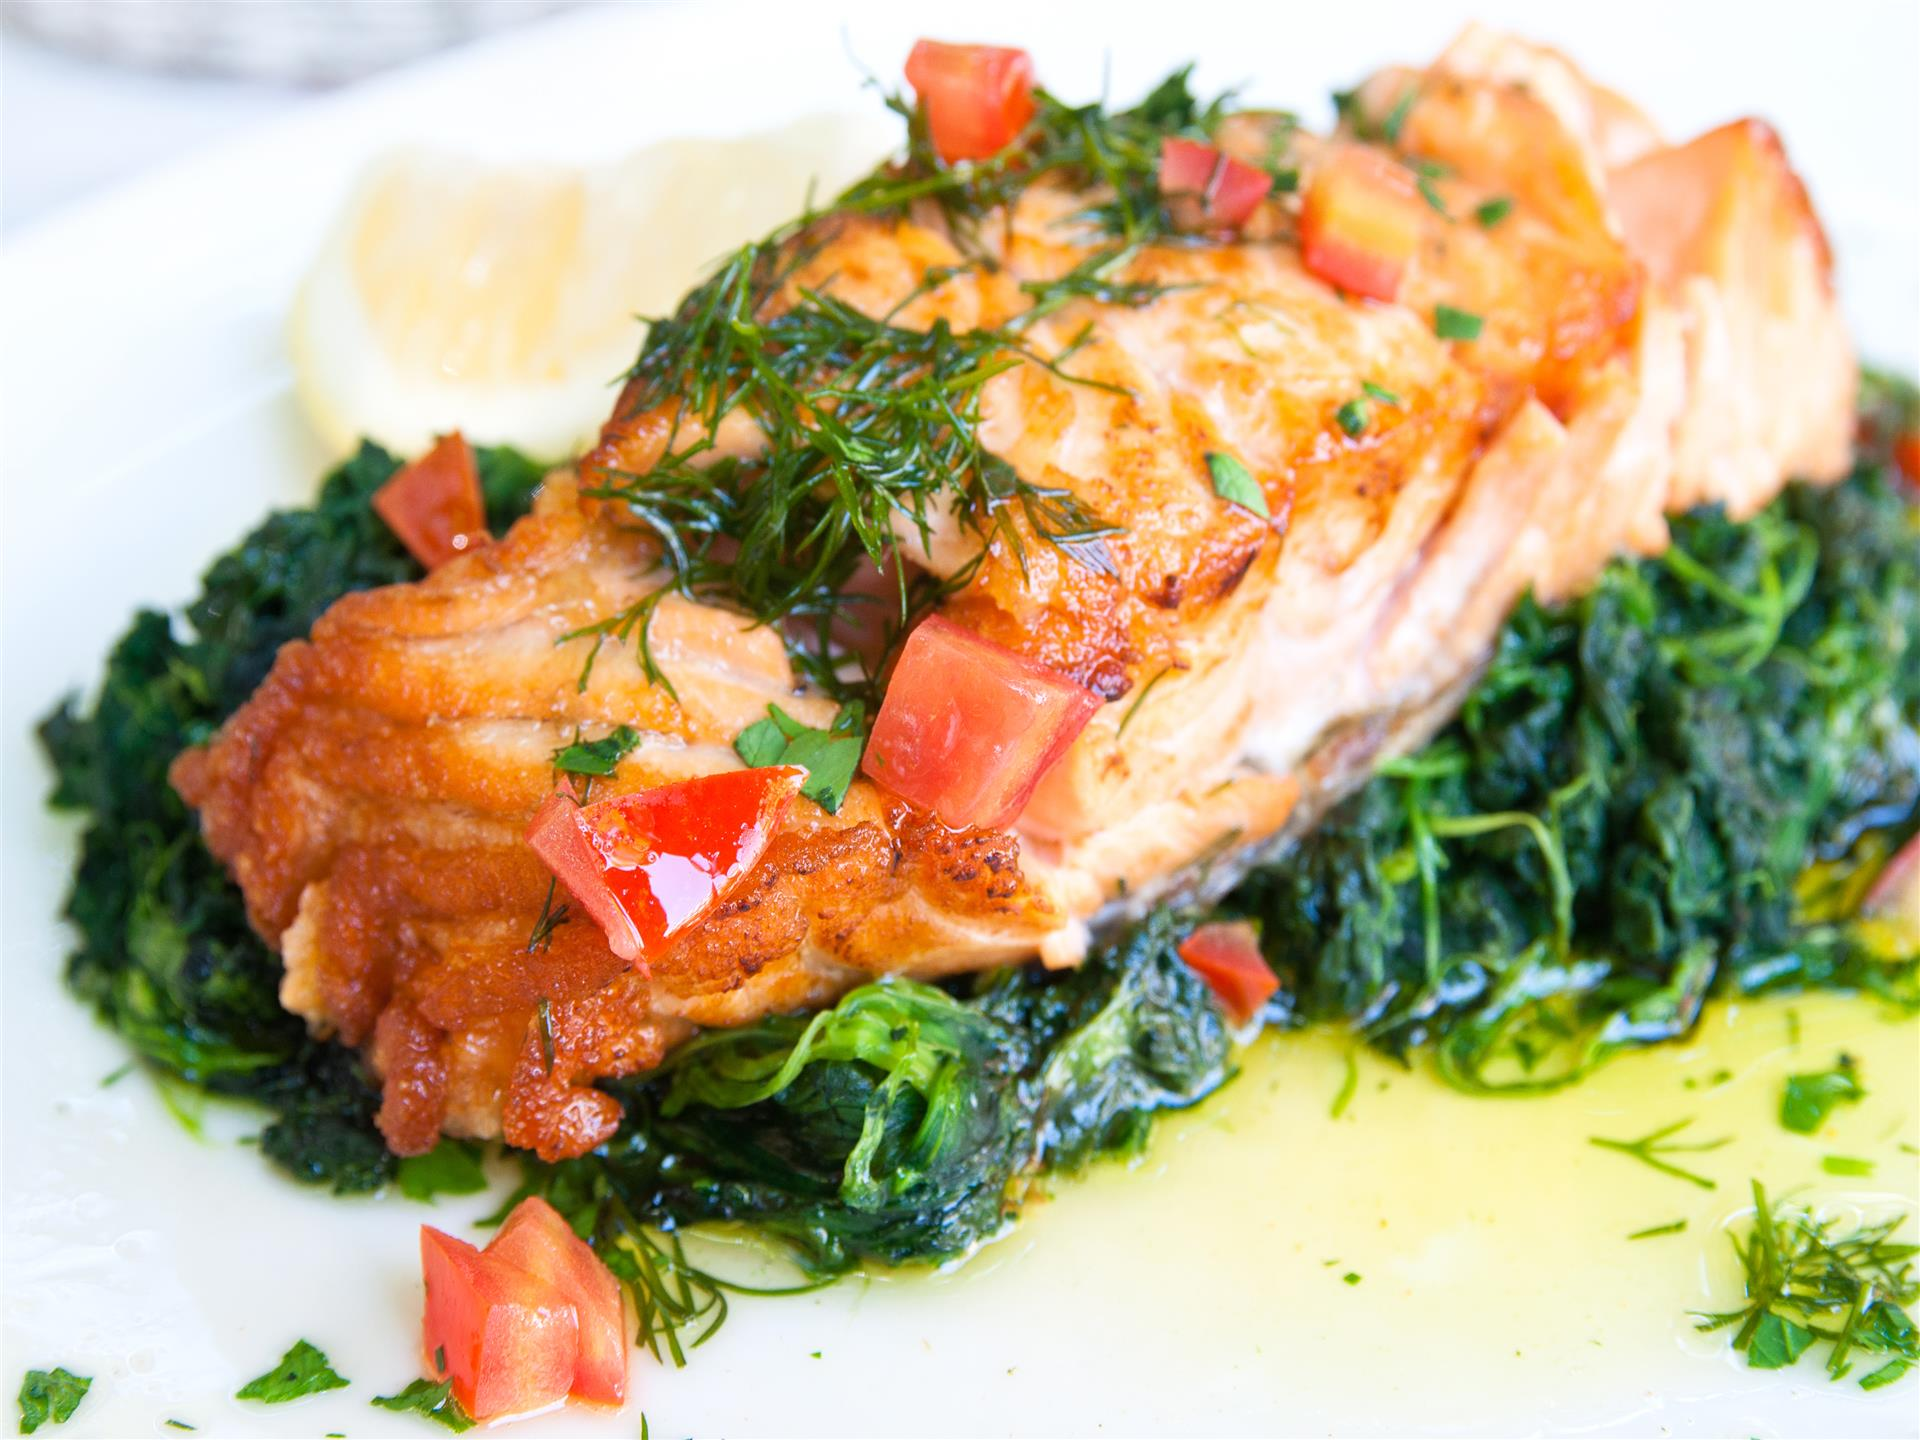 Pan seared salmon on a bed of cooked spinach with herbs and tomatoes on top